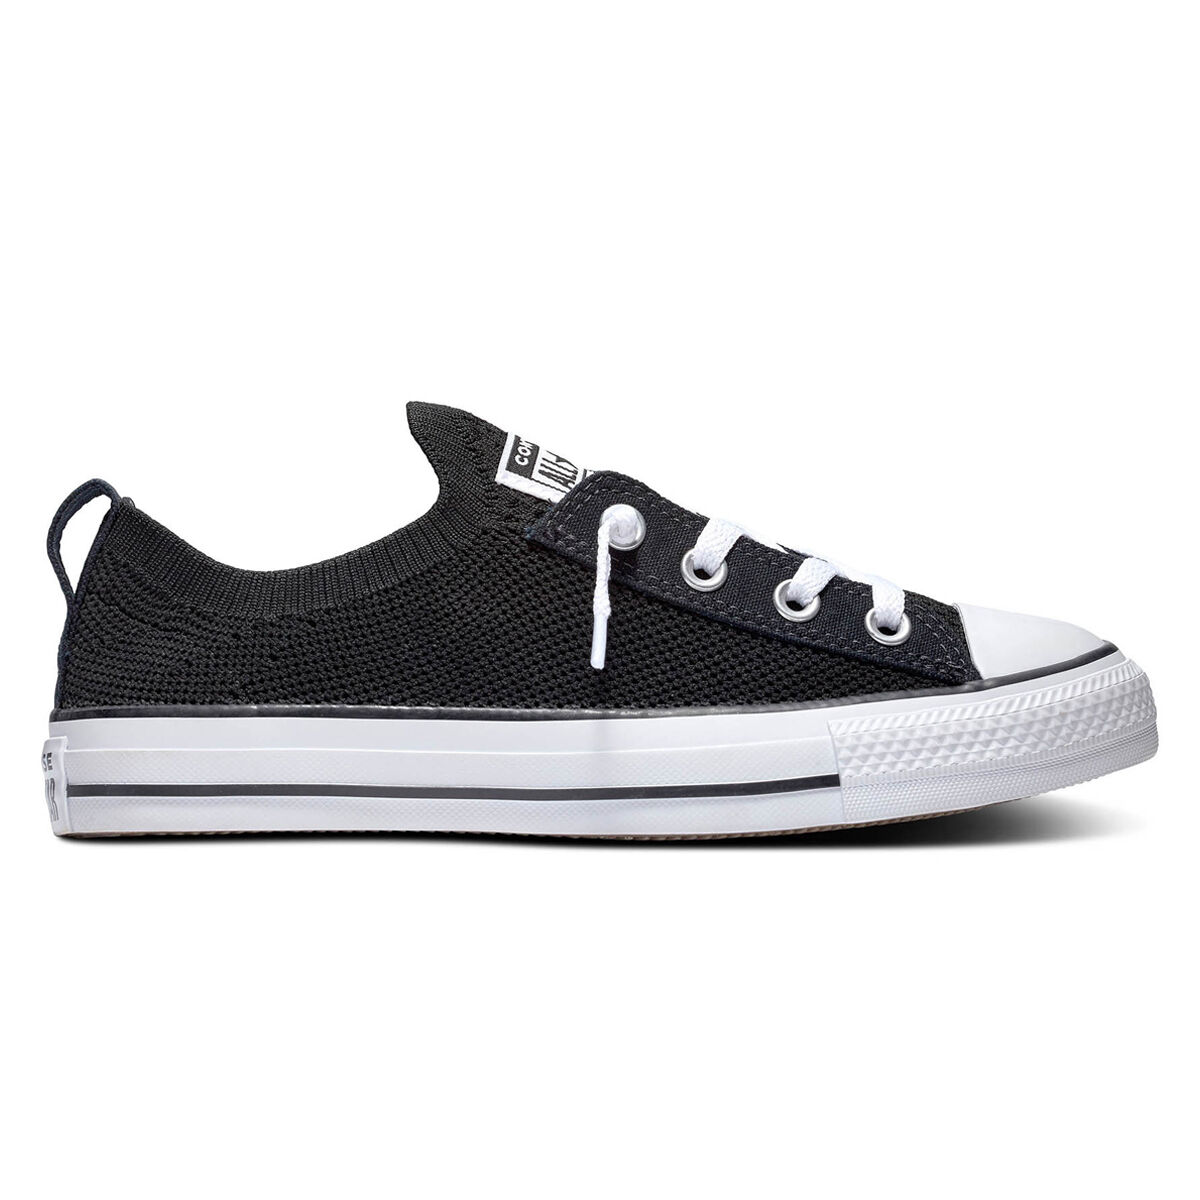 Converse Chuck Taylor All Star Shoreline Knit Low Top Womens Casual Shoes